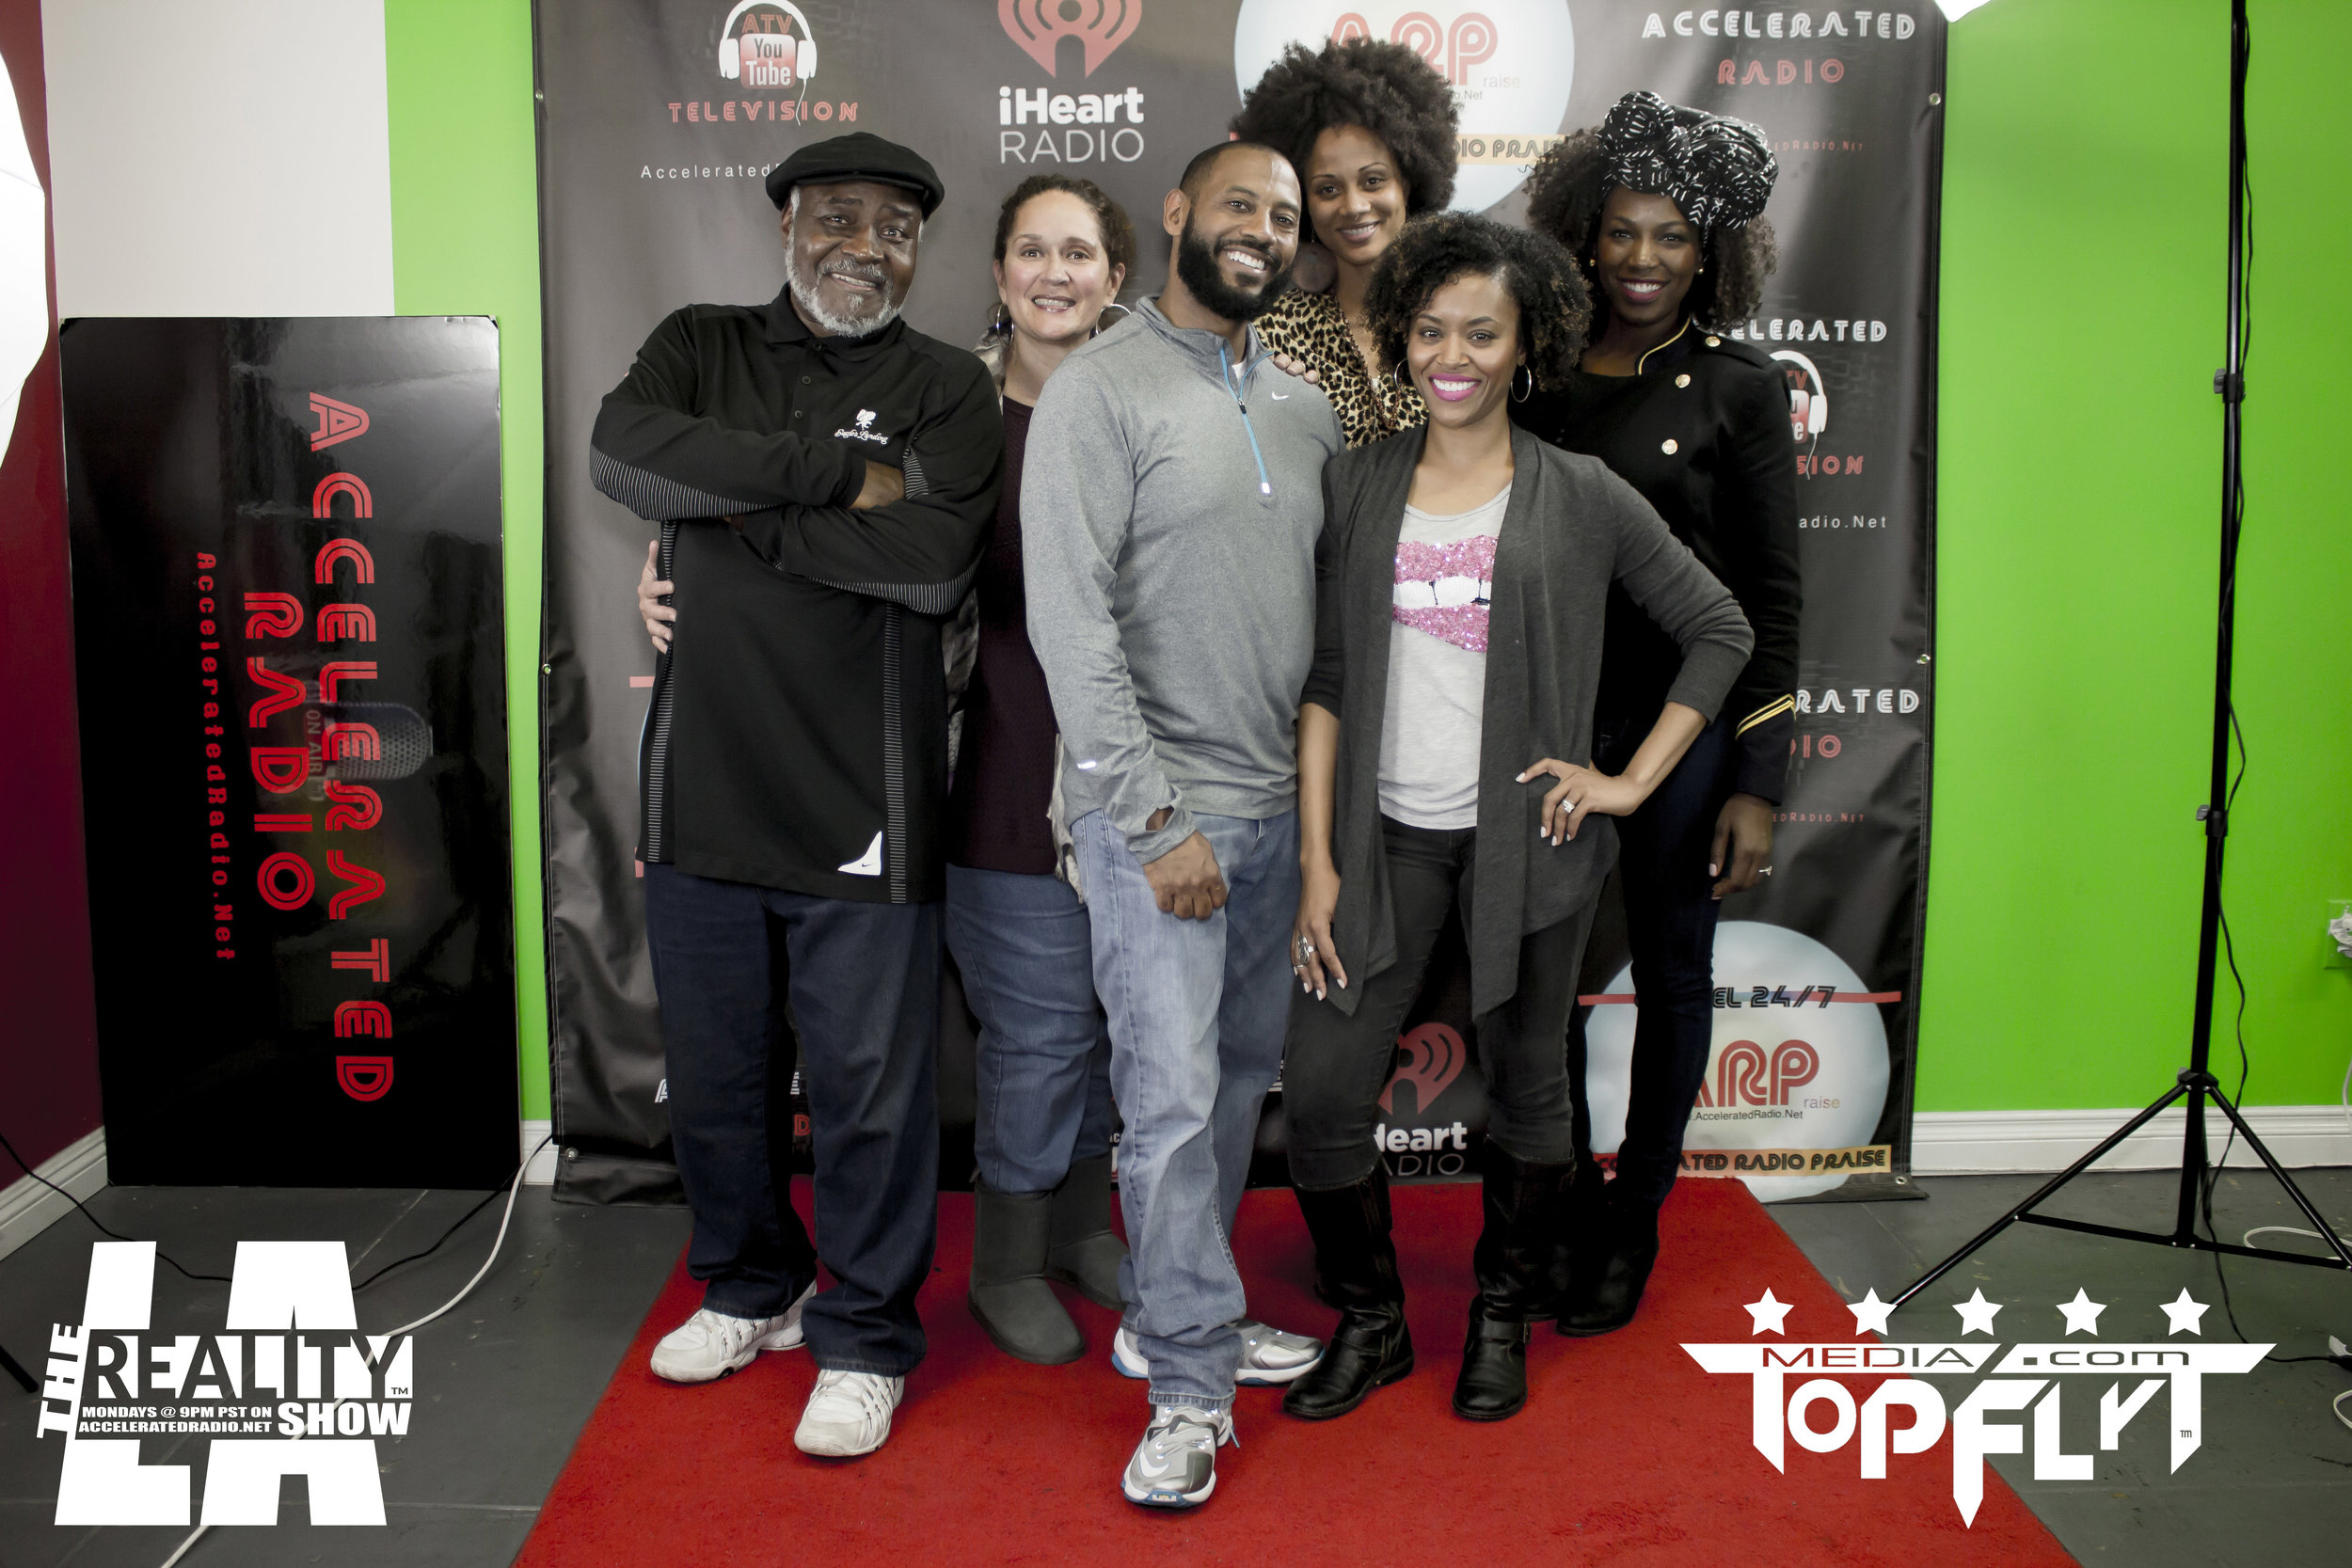 The Reality Show LA ft. Cast of FunnyMarriedStuff And Raquel Harris - 01-16-17_51.jpg